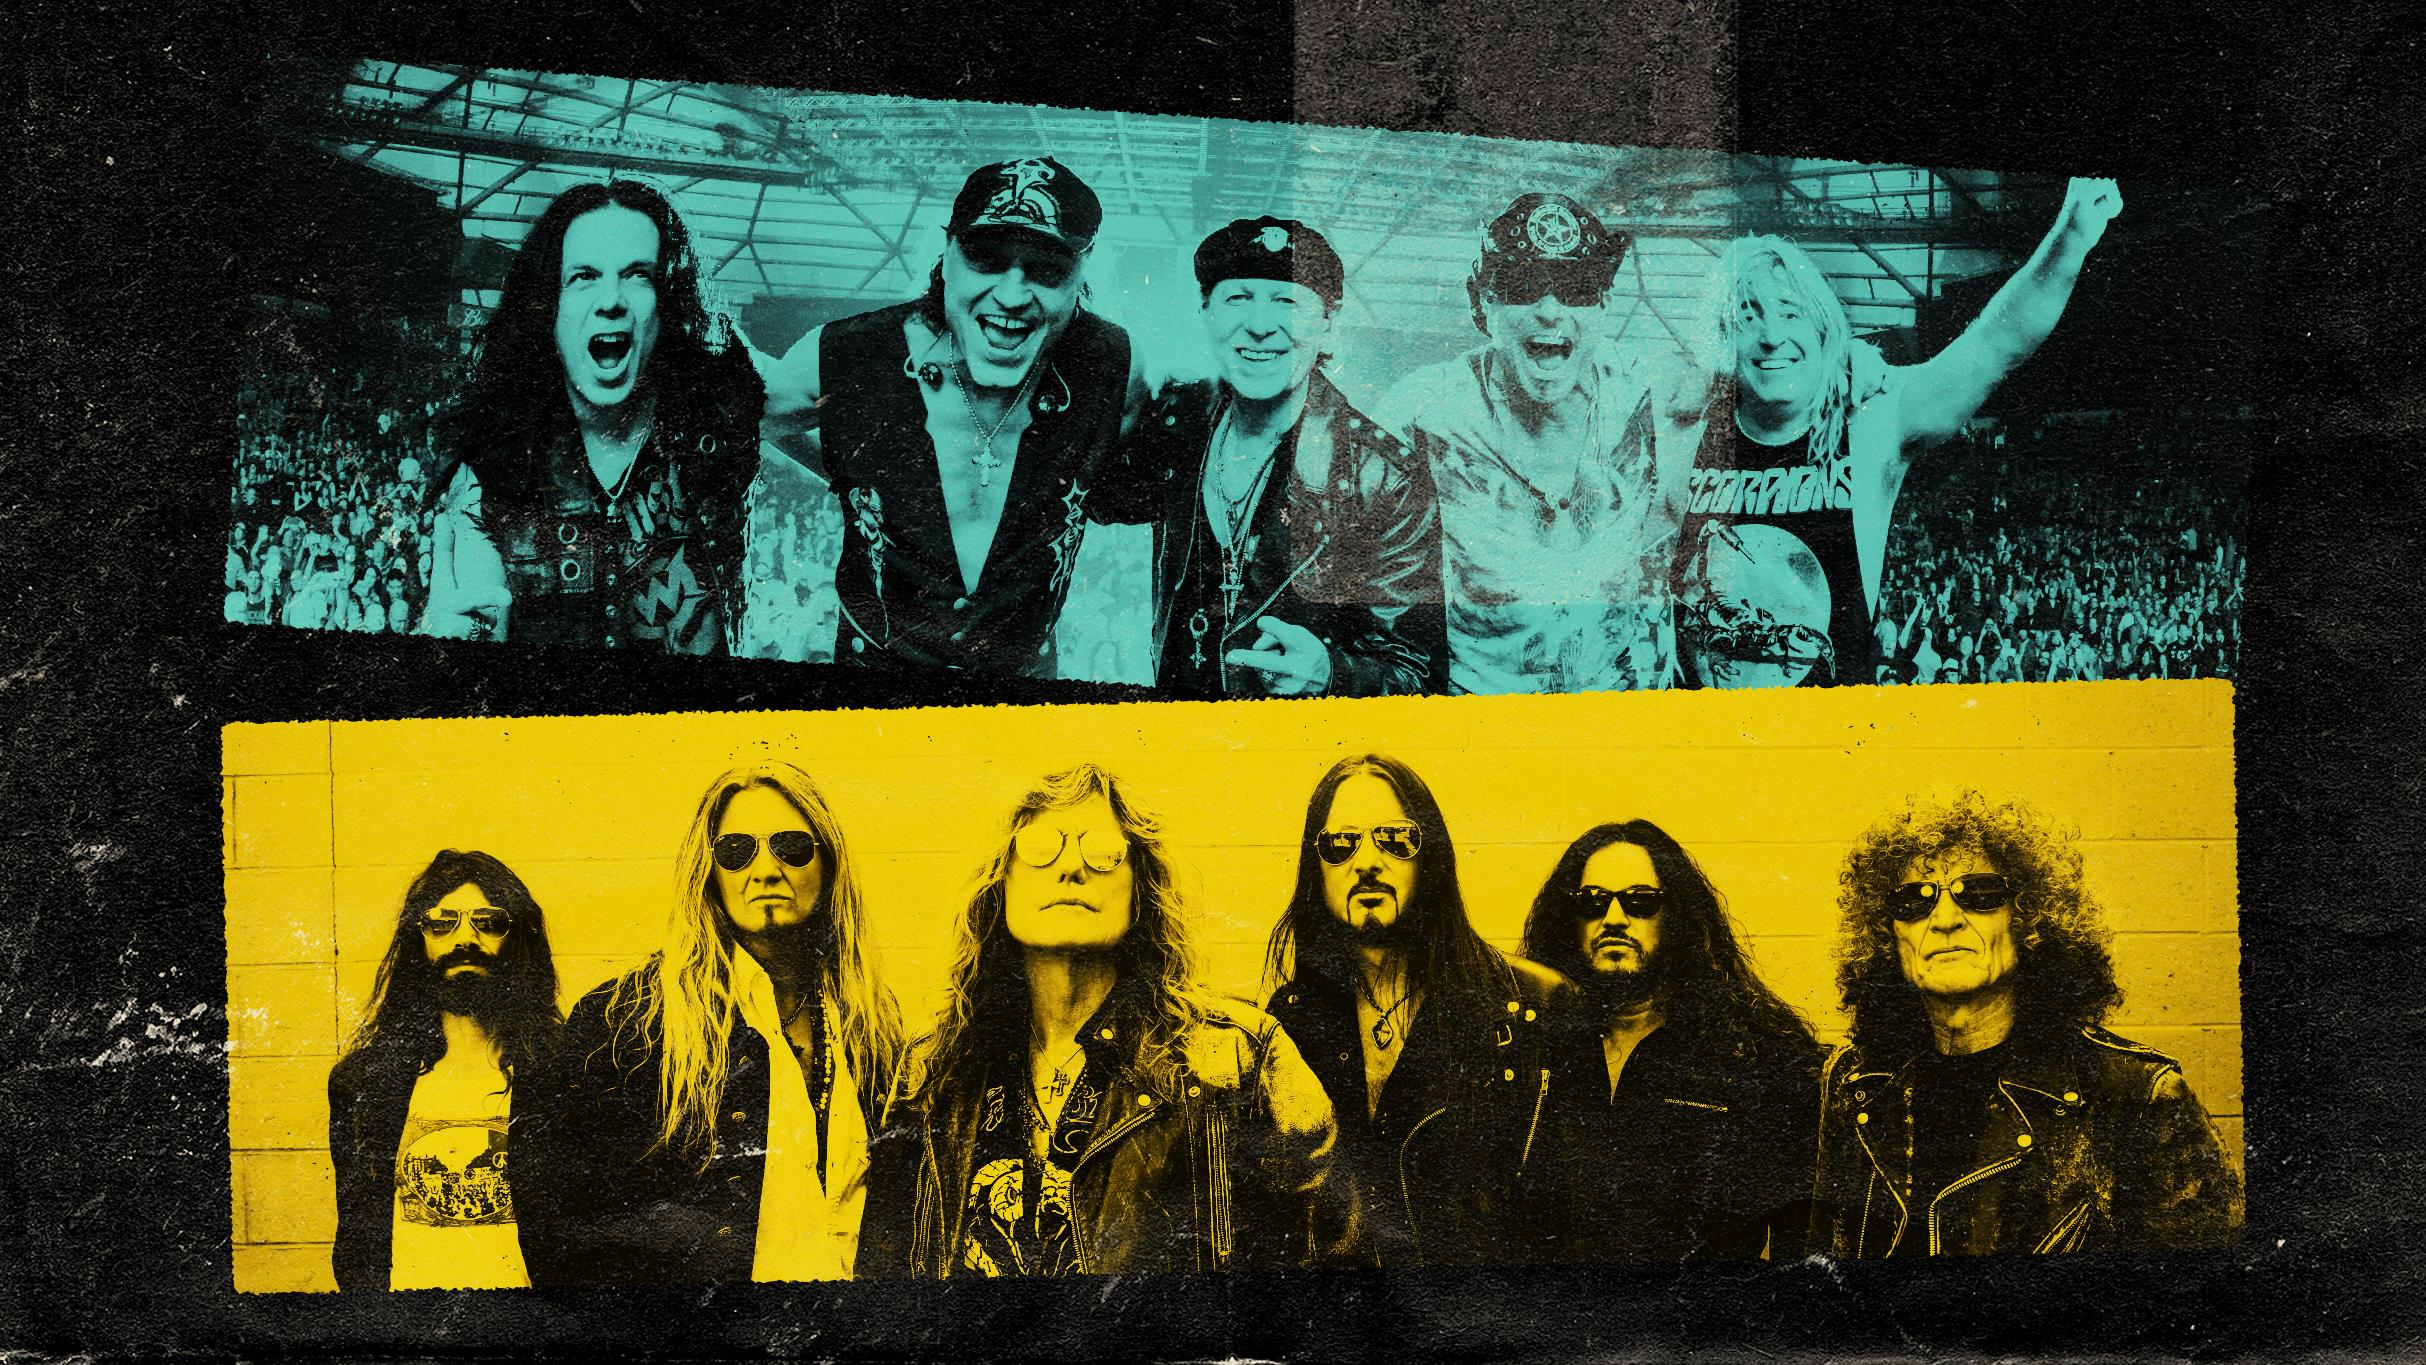 Buy tickets for Scorpions & Whitesnake at Qudos Bank Arena ...